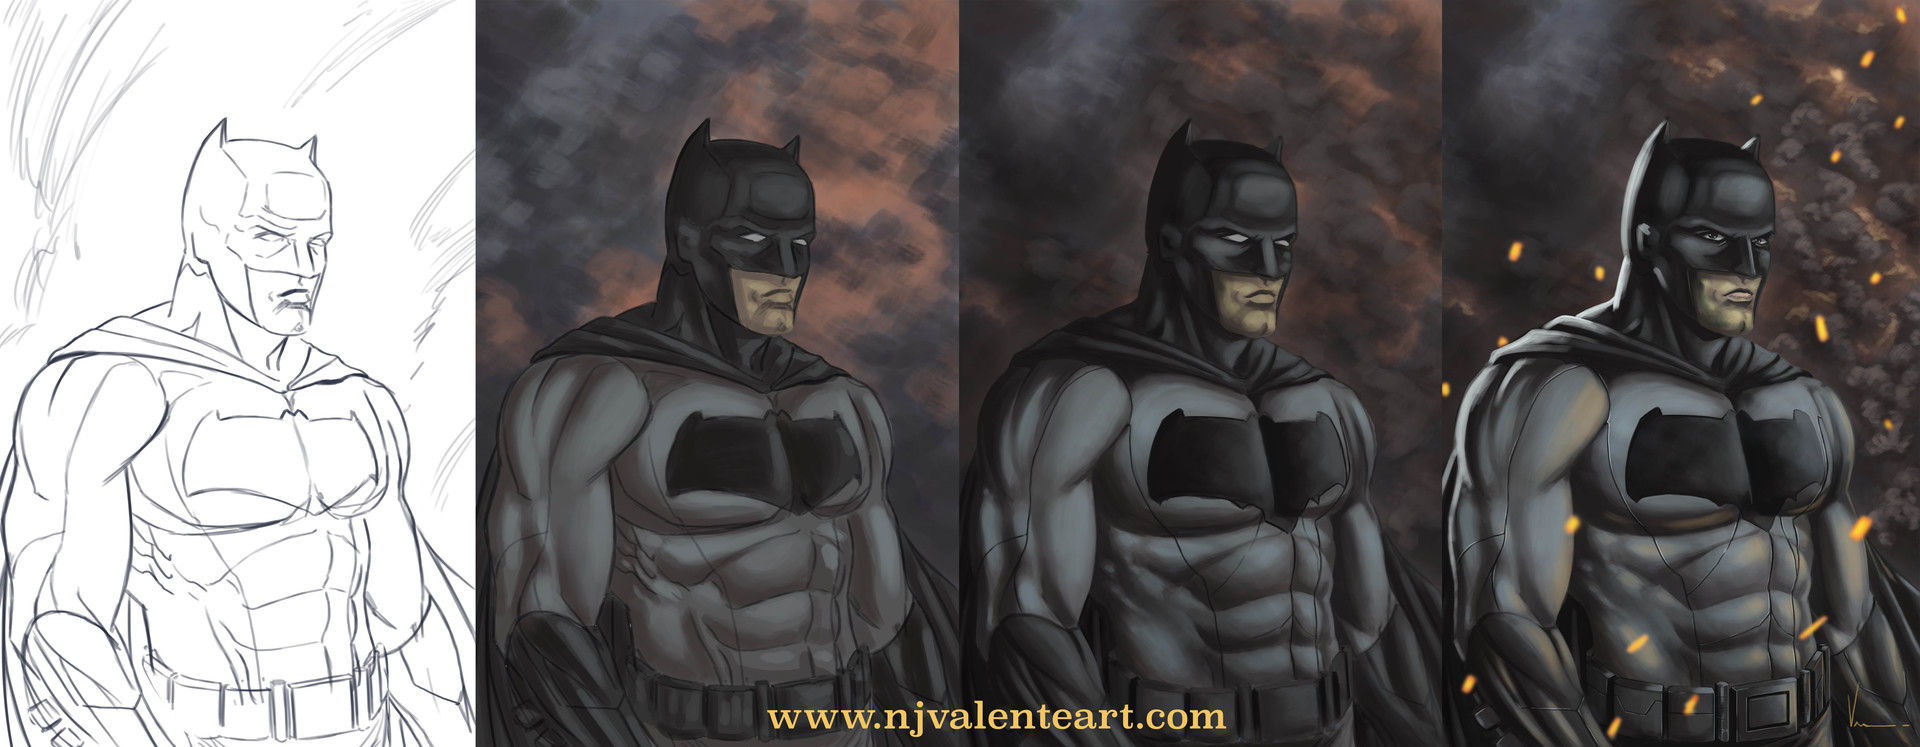 Nick valente batmandigitalpaintingprocess